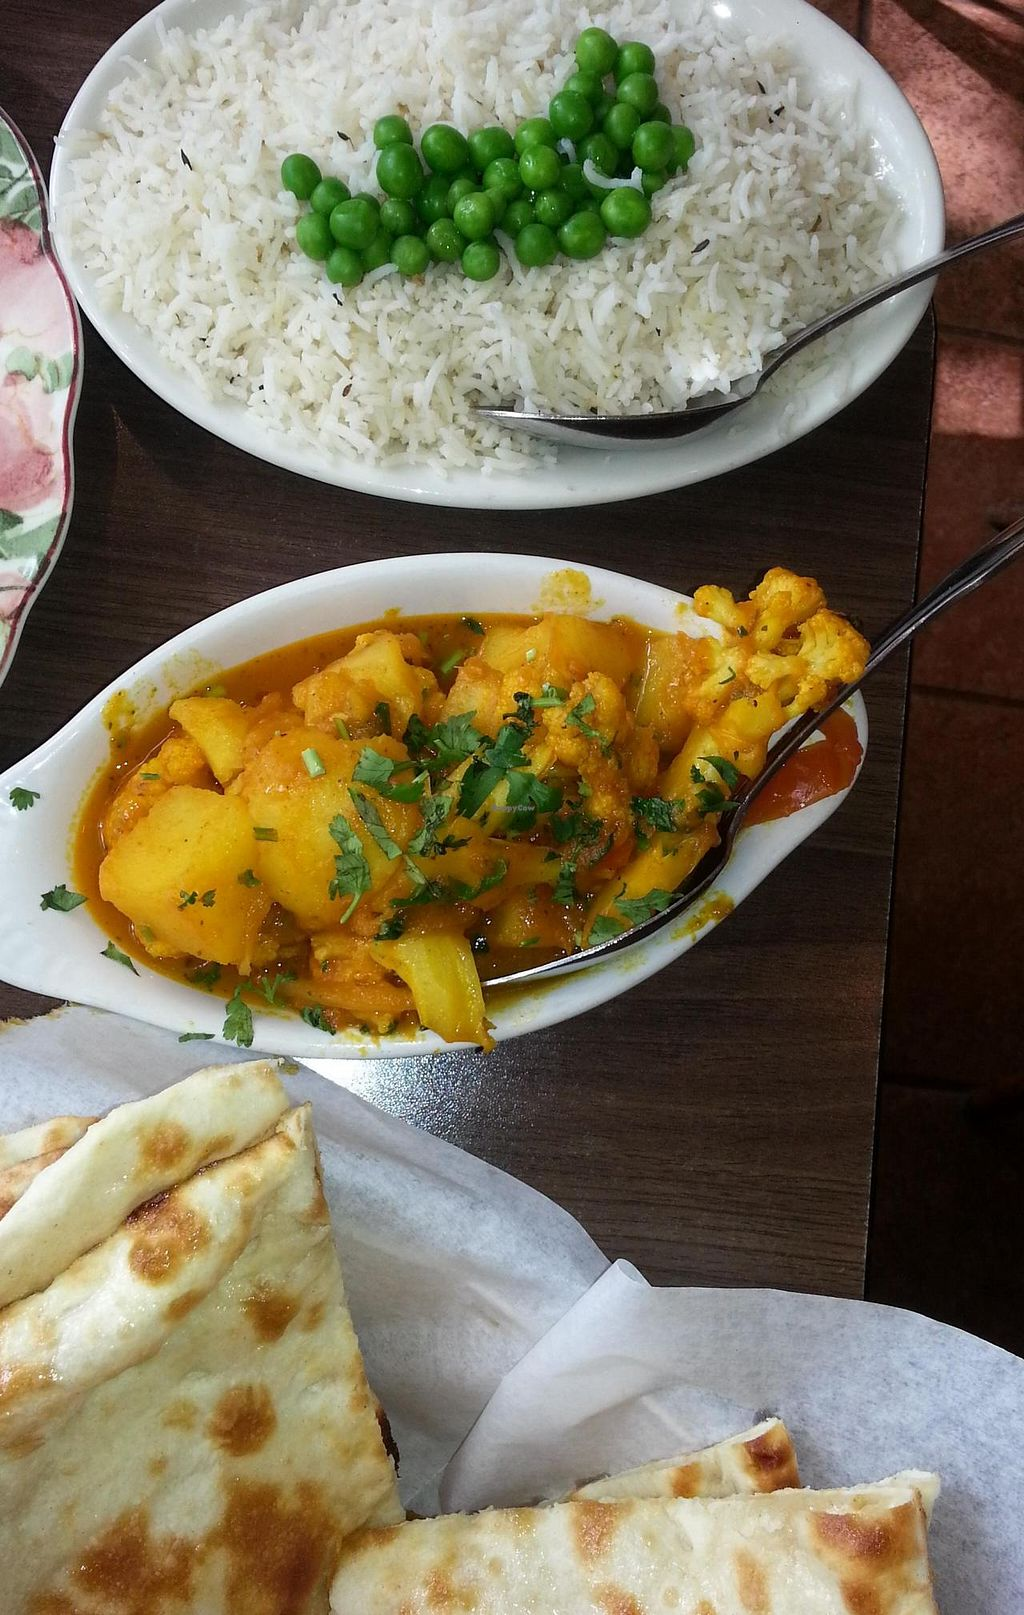 """Photo of Cafe Lotus  by <a href=""""/members/profile/LindaDunlapOliva"""">LindaDunlapOliva</a> <br/>Aloo Gobi, Naan and rice? (not sure if it has a special name) <br/> December 9, 2014  - <a href='/contact/abuse/image/36039/87573'>Report</a>"""